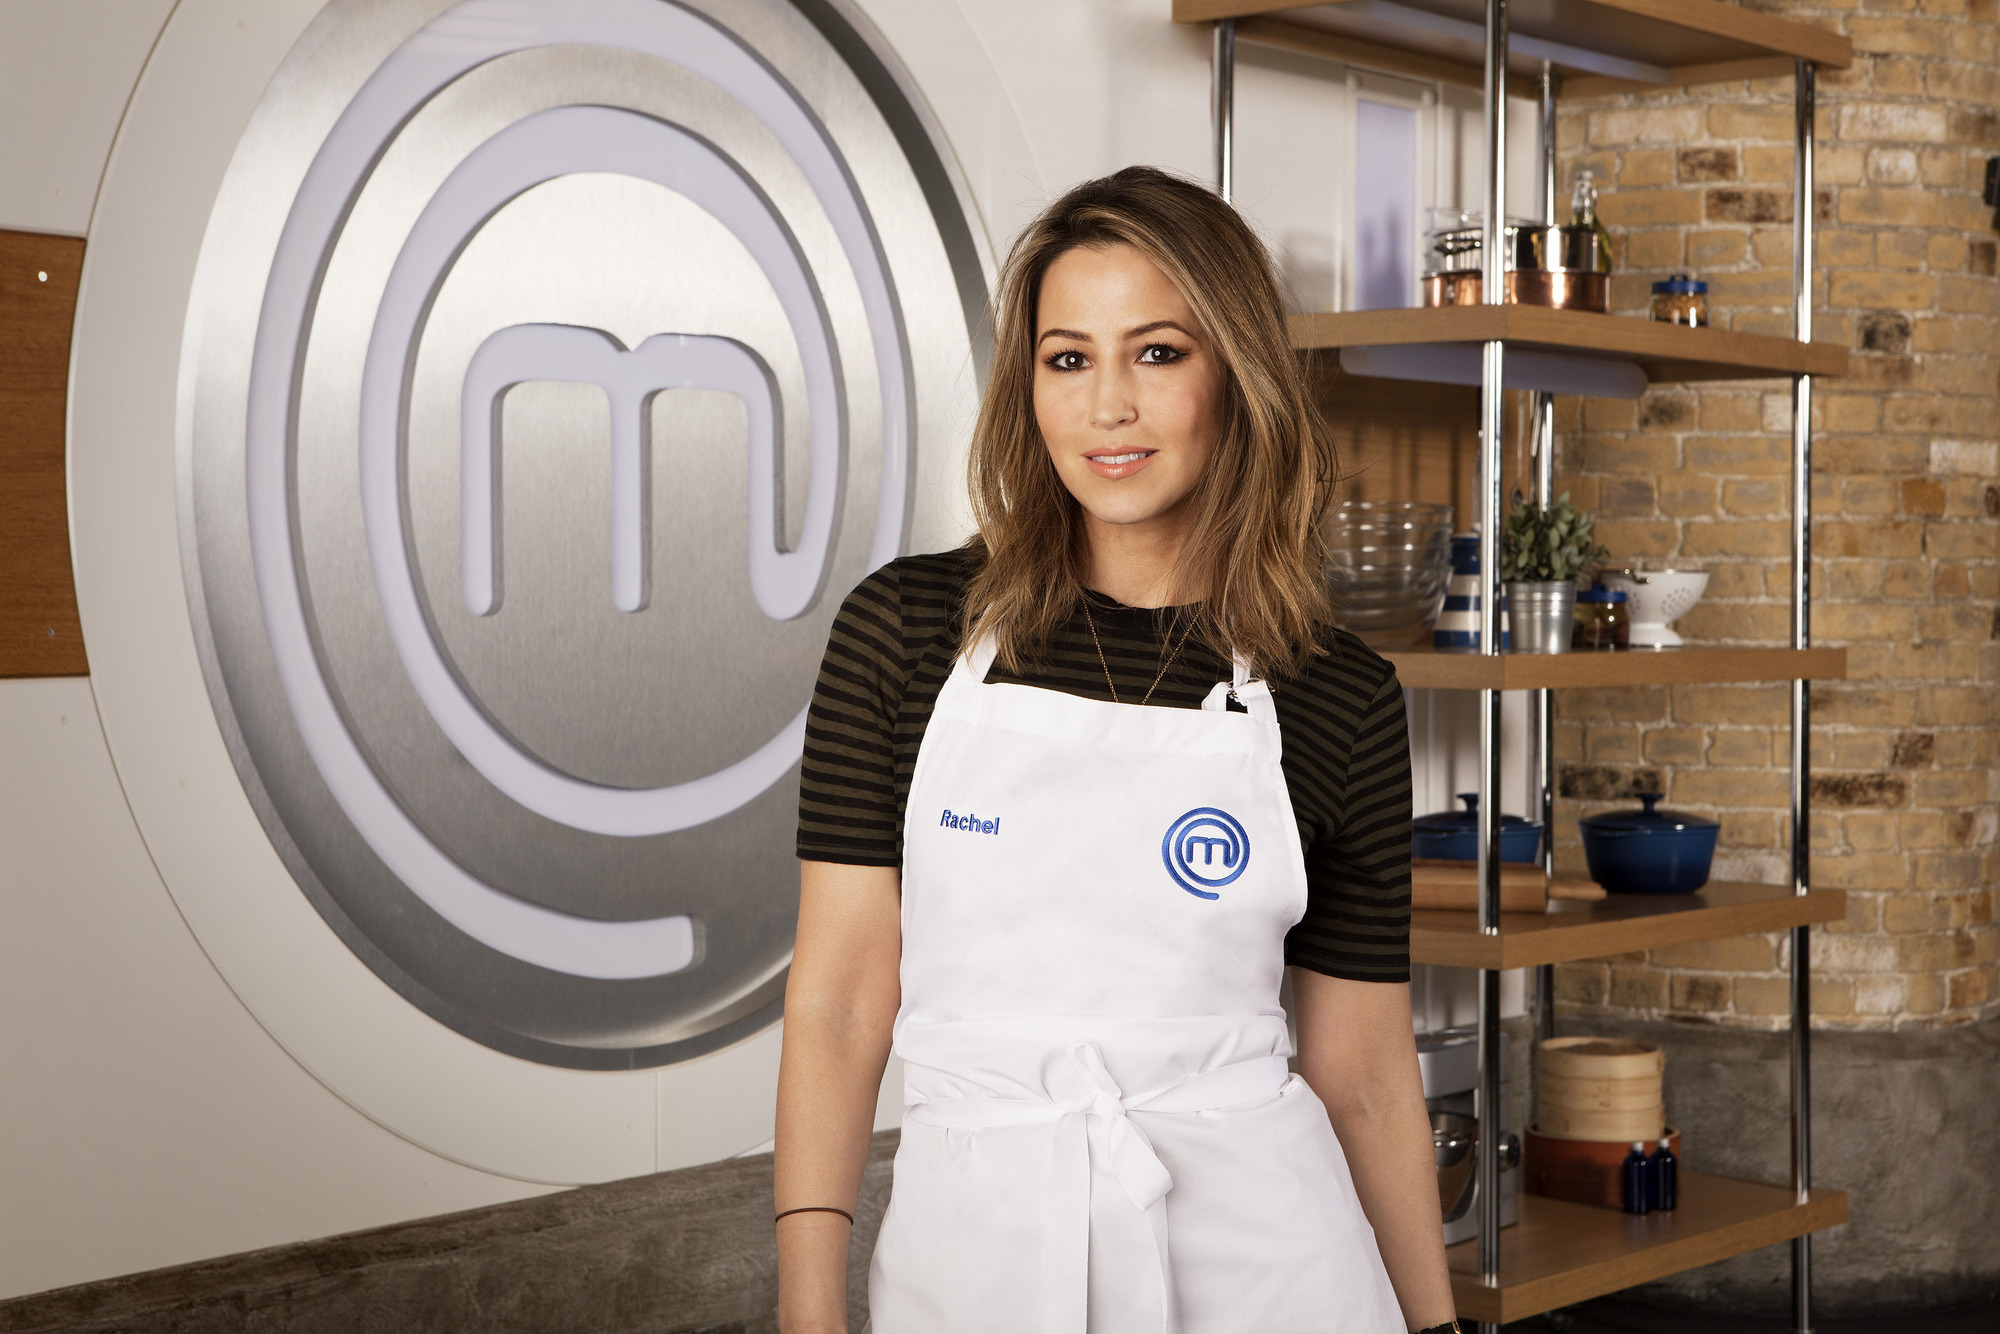 Pop star Rachel Stevens, comedian Vic Reeves and glamorous assistant Debbie McGee battle it out in the kitchen as the new season of Celebrity MasterChef kicks off